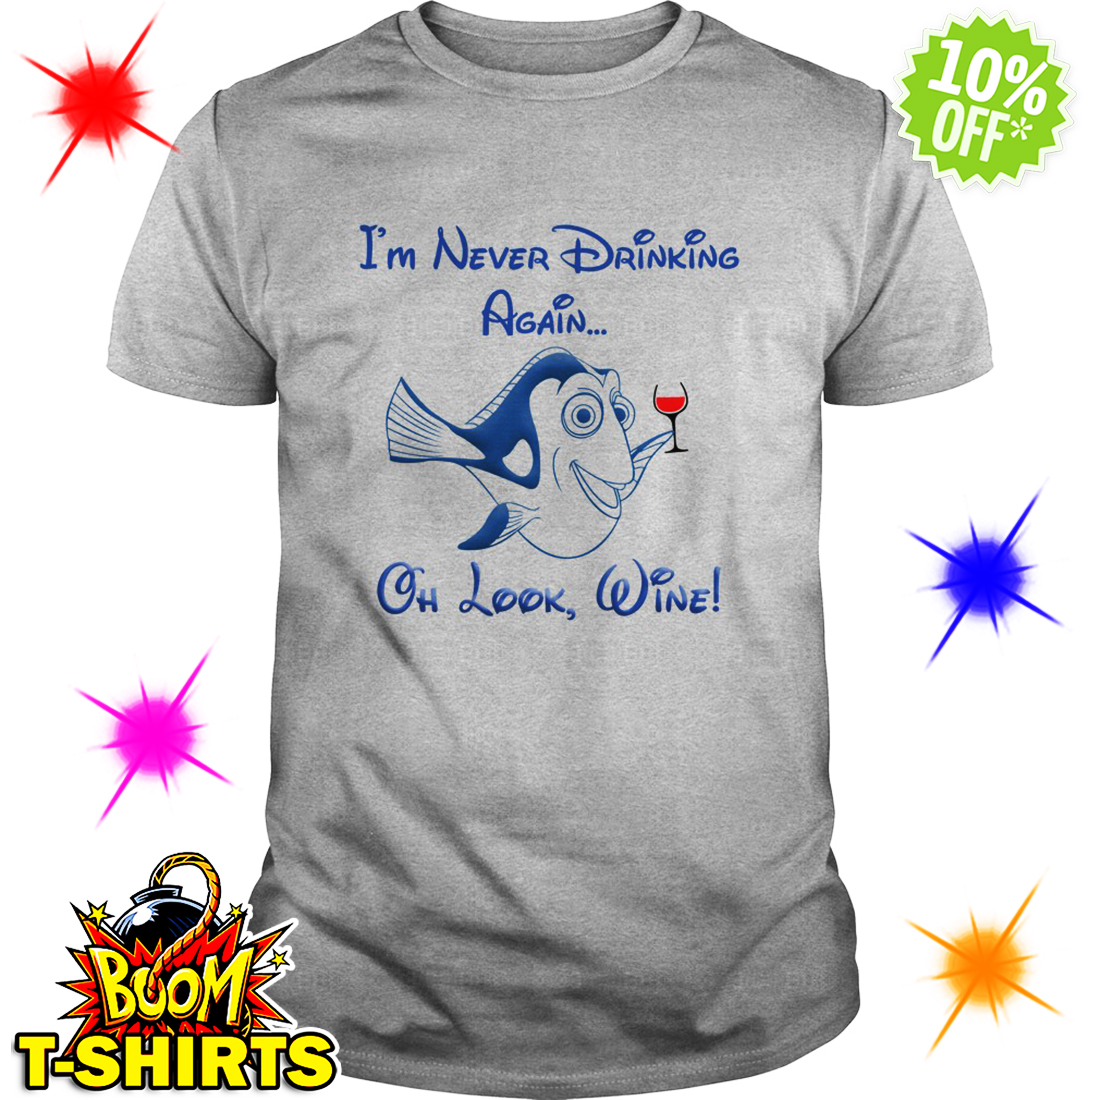 875e7f722 TOP SALE) Dory Disney I'm never drinking again oh look wine shirt, v ...